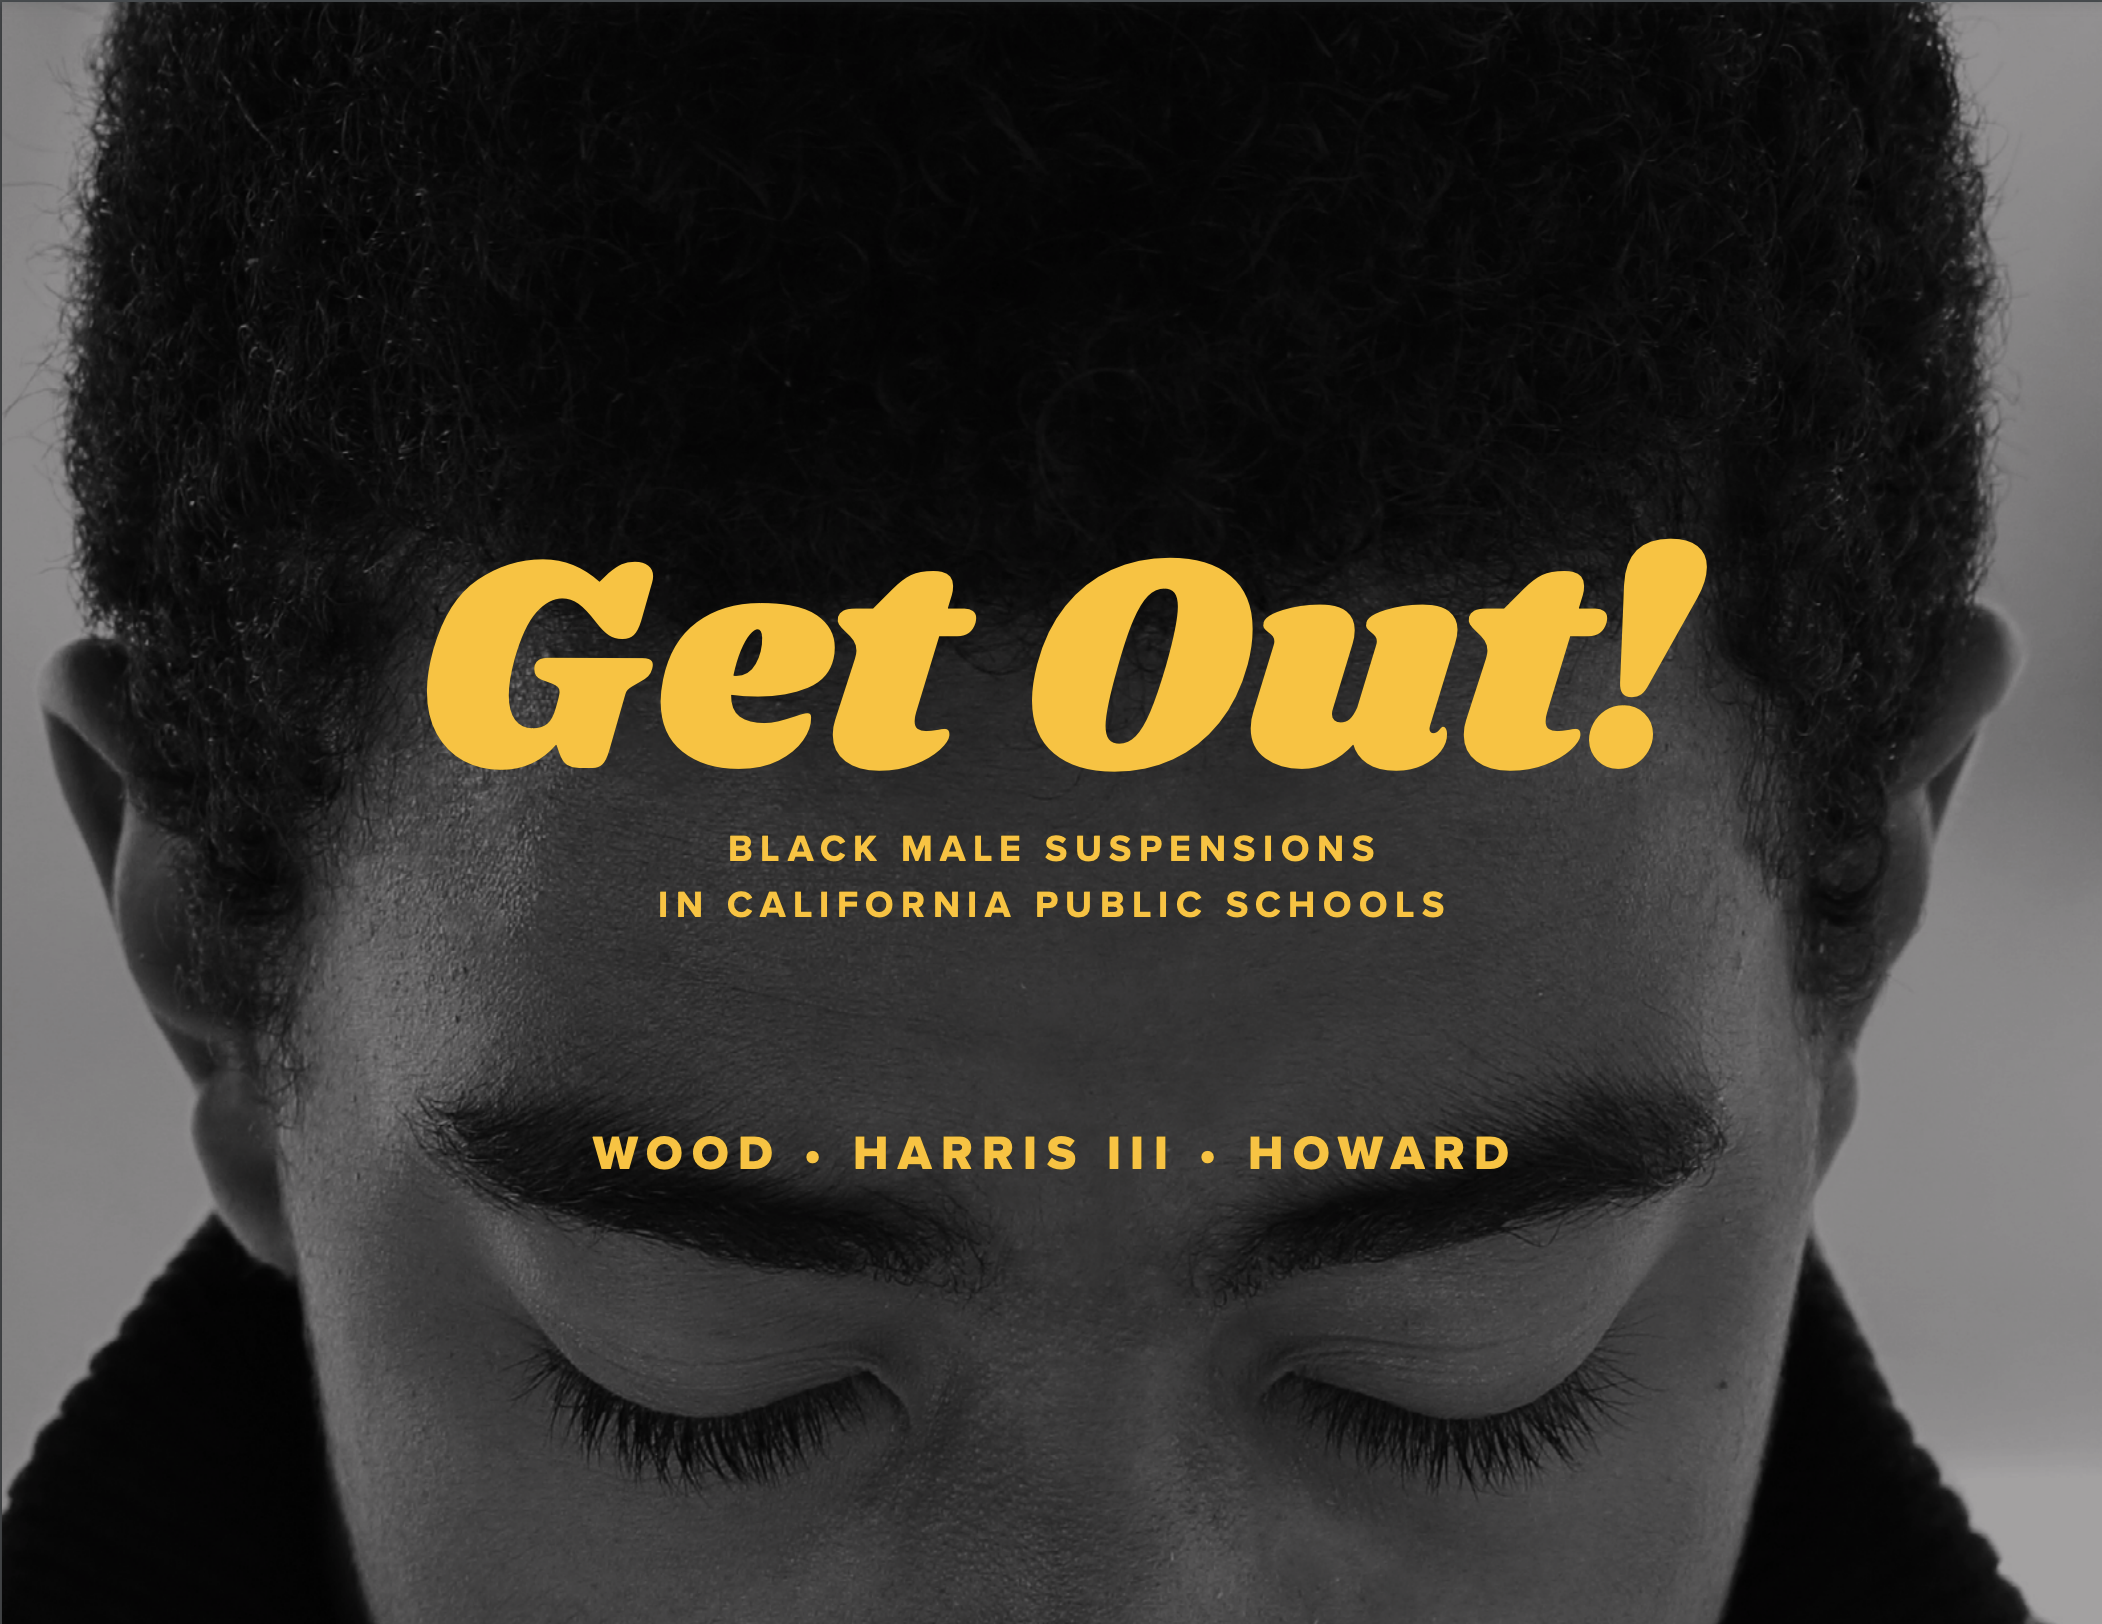 Get Out! Black Male Suspensions